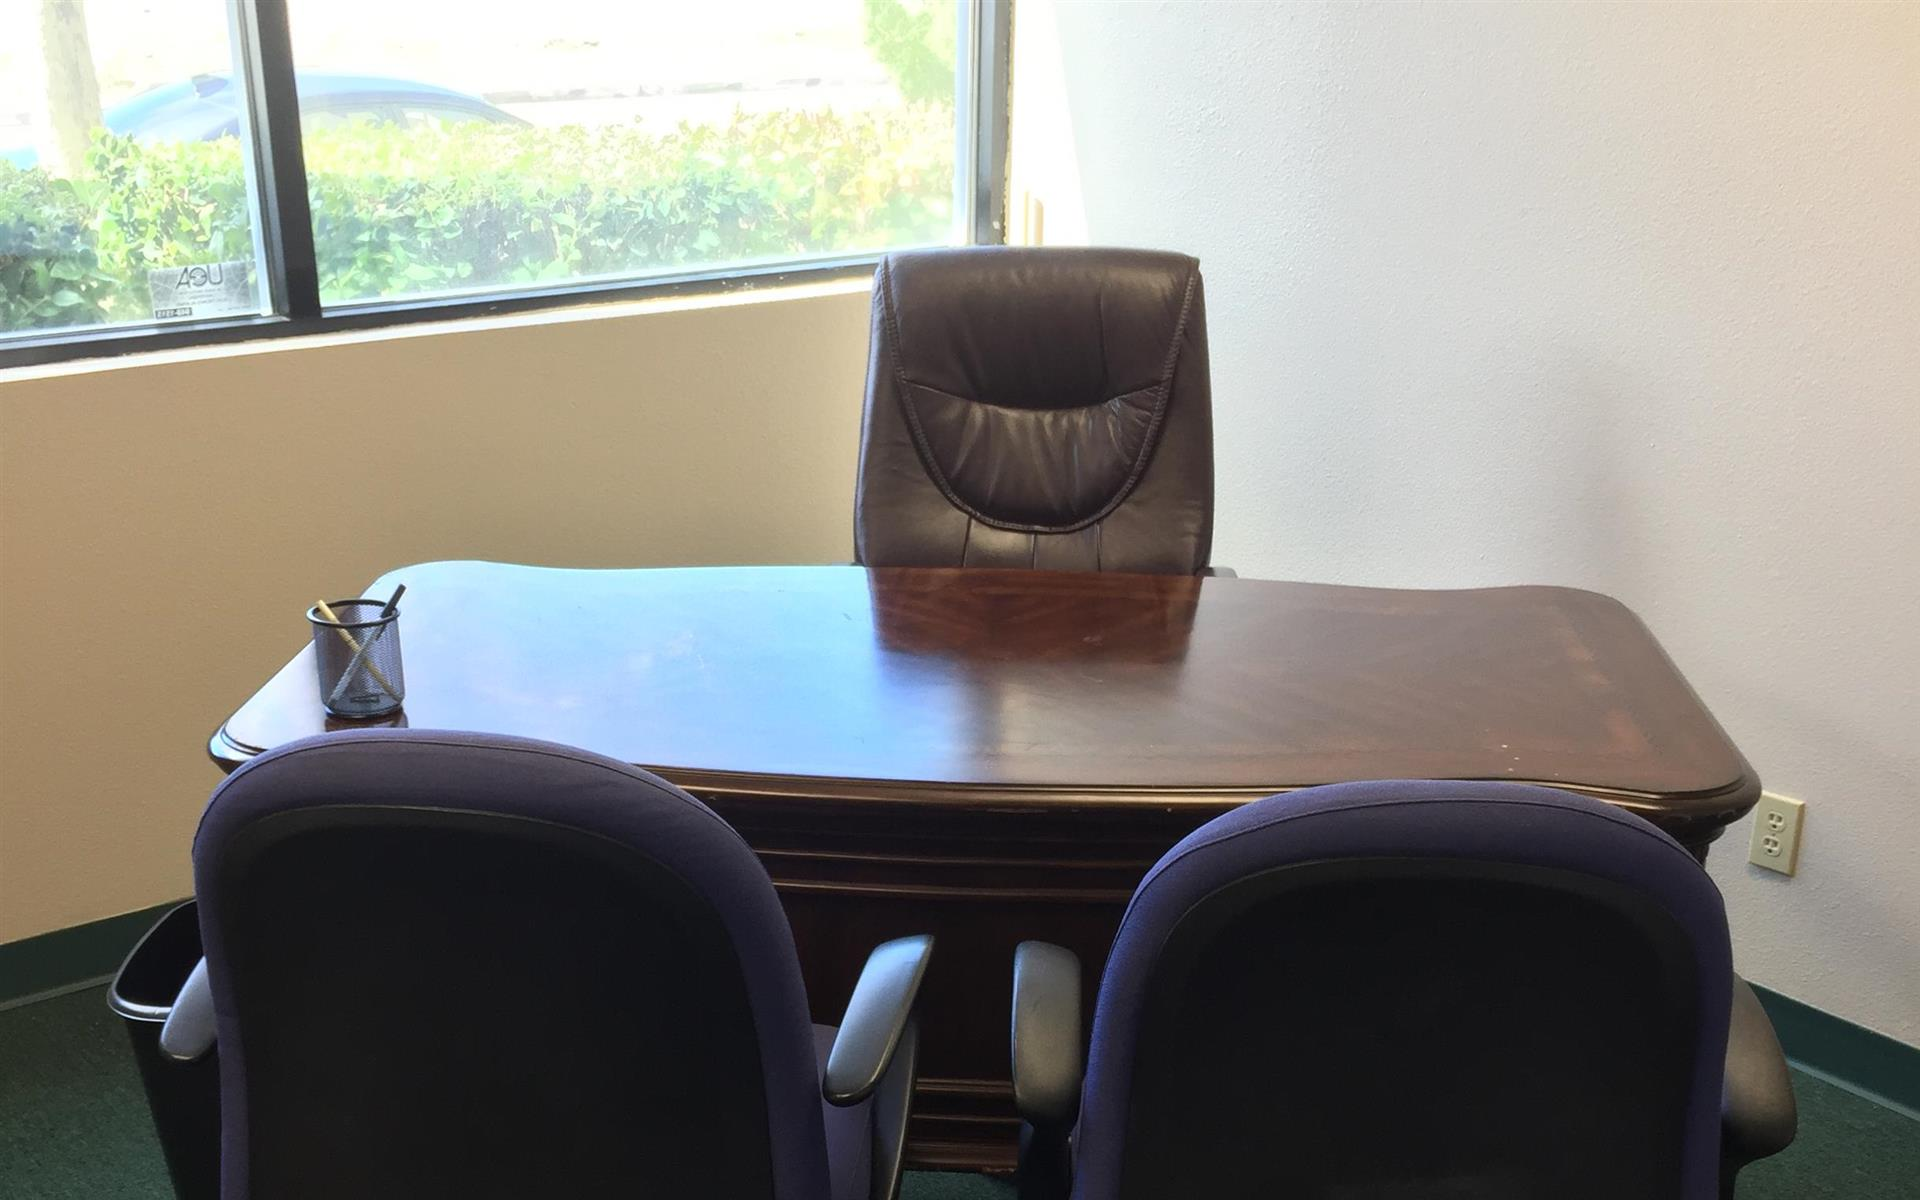 The Met Center AV - Executive Office Suite 515 - F2